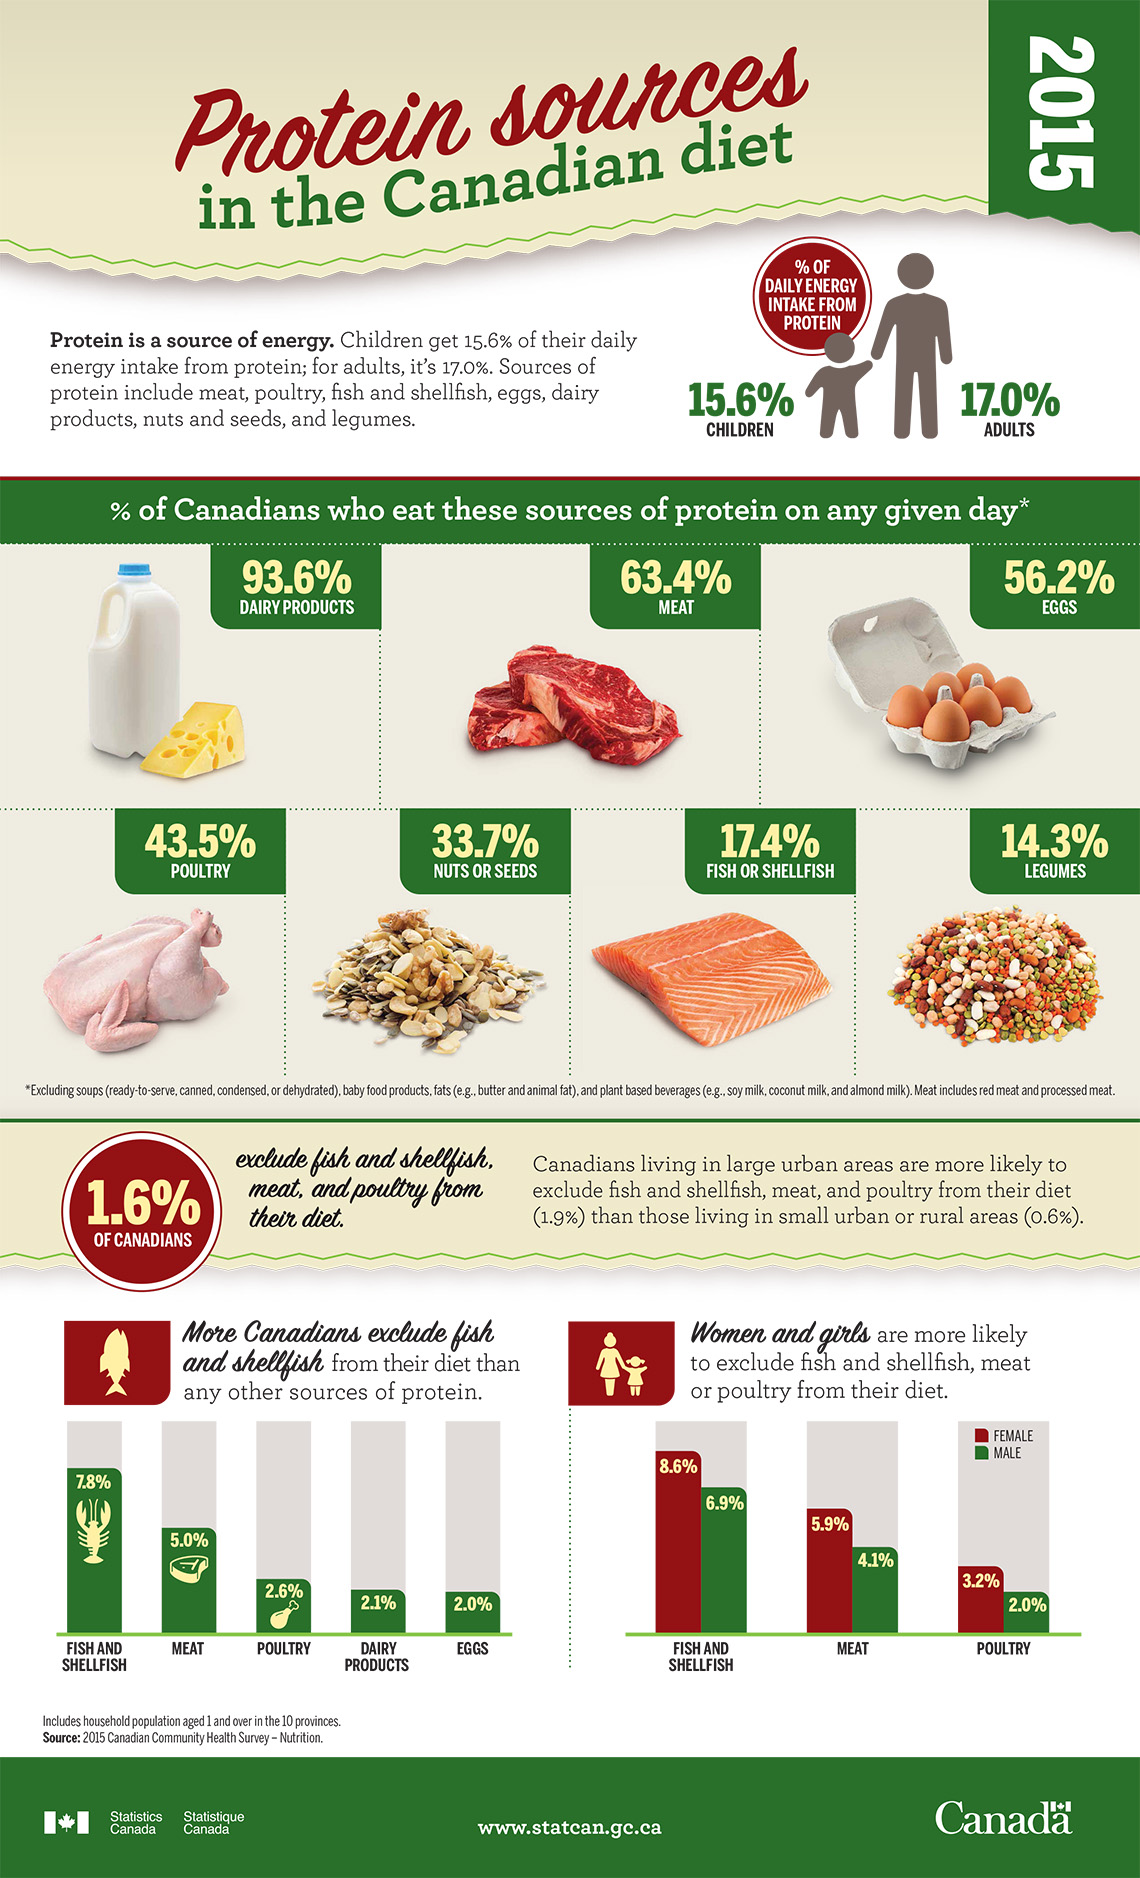 Protein sources in the Canadian diet, 2015